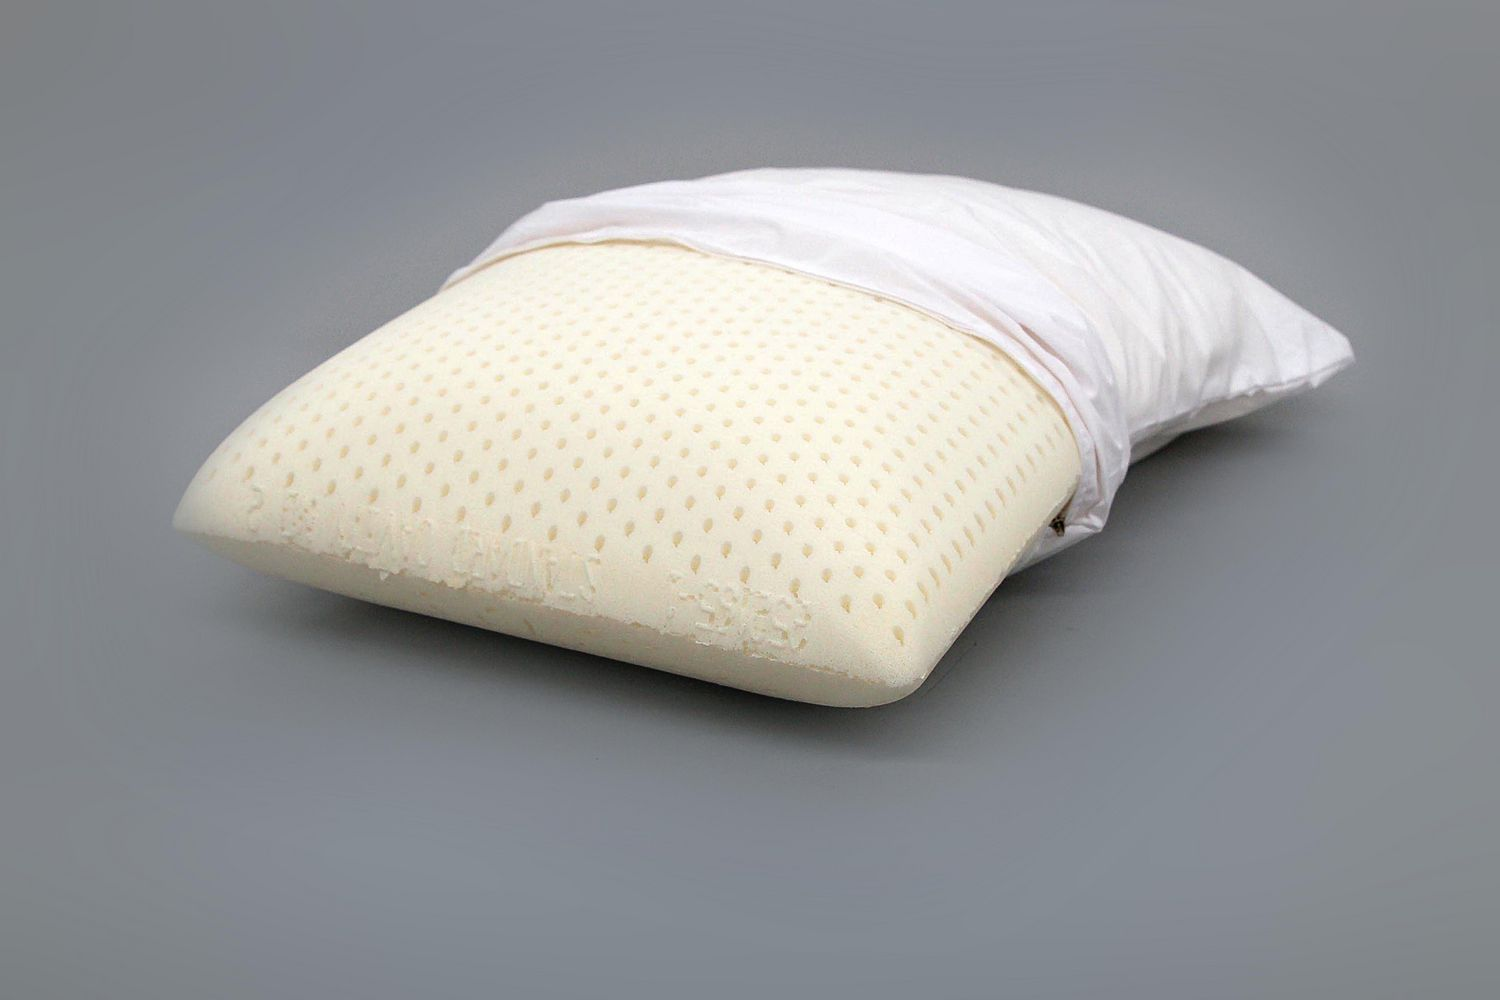 Bodyform Orthopedic Standard Latex Pillow Walmart Canada